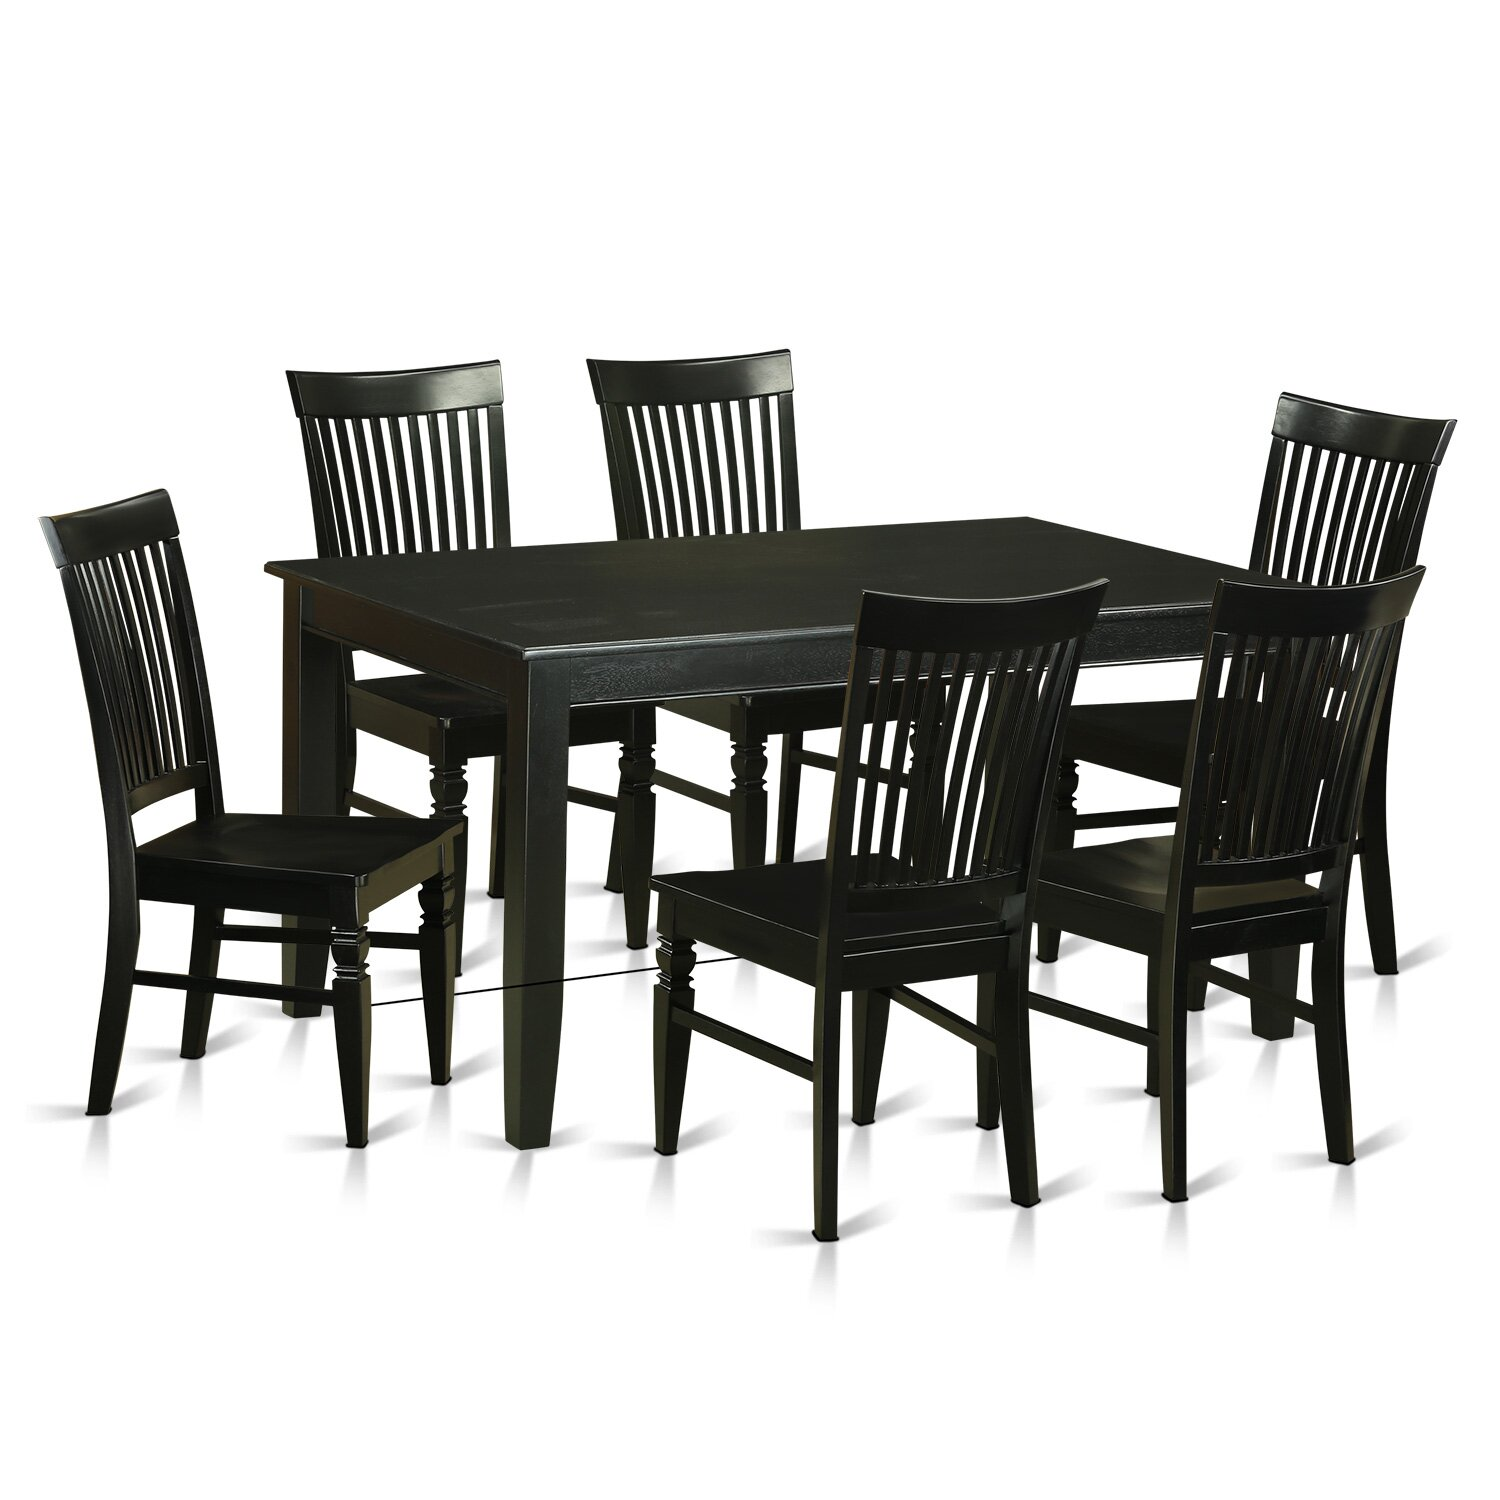 East west dudley 7 piece dining set wayfair for Kitchen dining room furniture